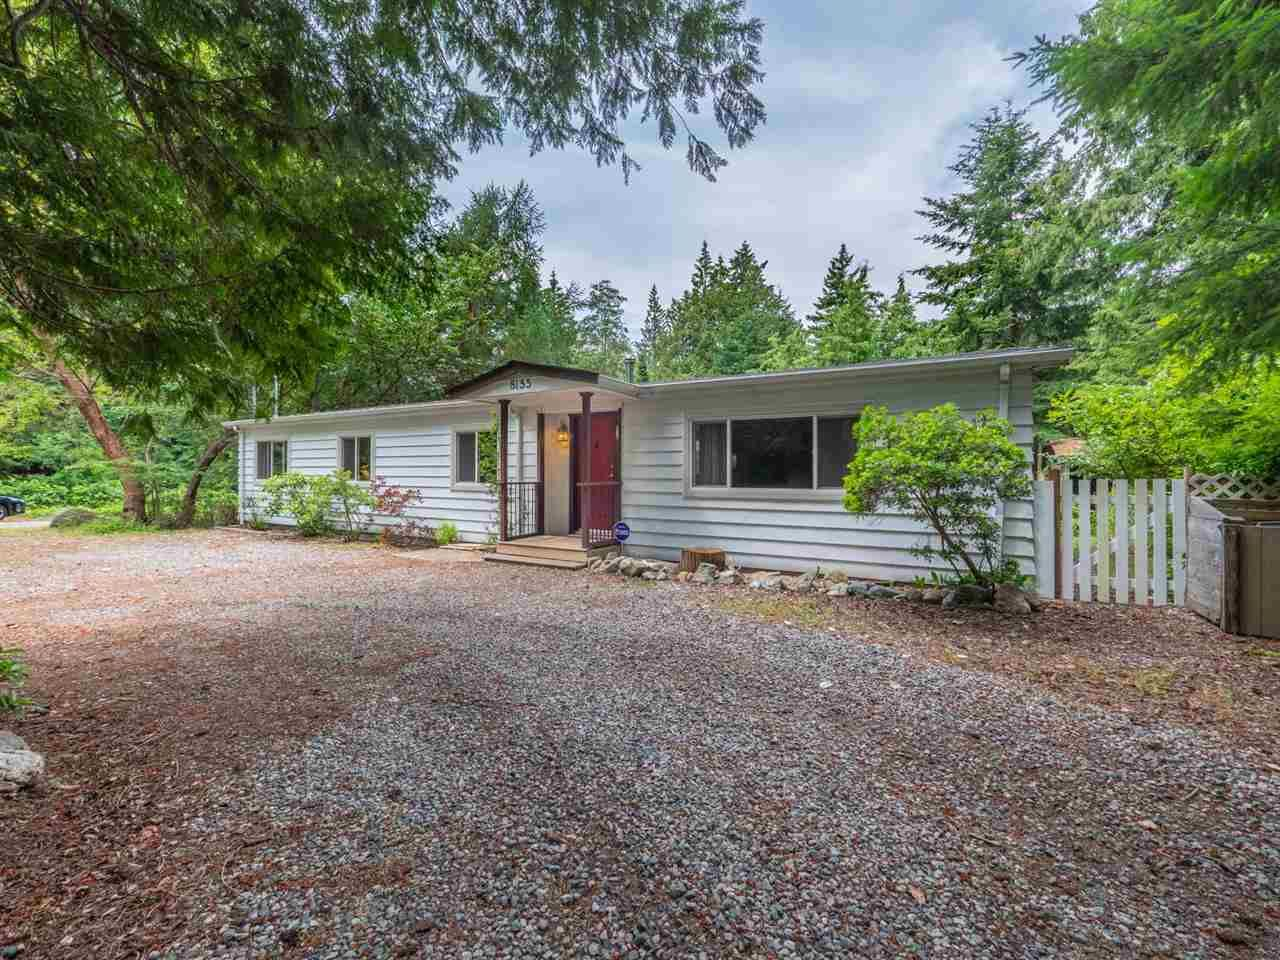 """Main Photo: 8155 WESTWOOD Road in Halfmoon Bay: Halfmn Bay Secret Cv Redroofs House for sale in """"Welcome Woods"""" (Sunshine Coast)  : MLS®# R2282516"""